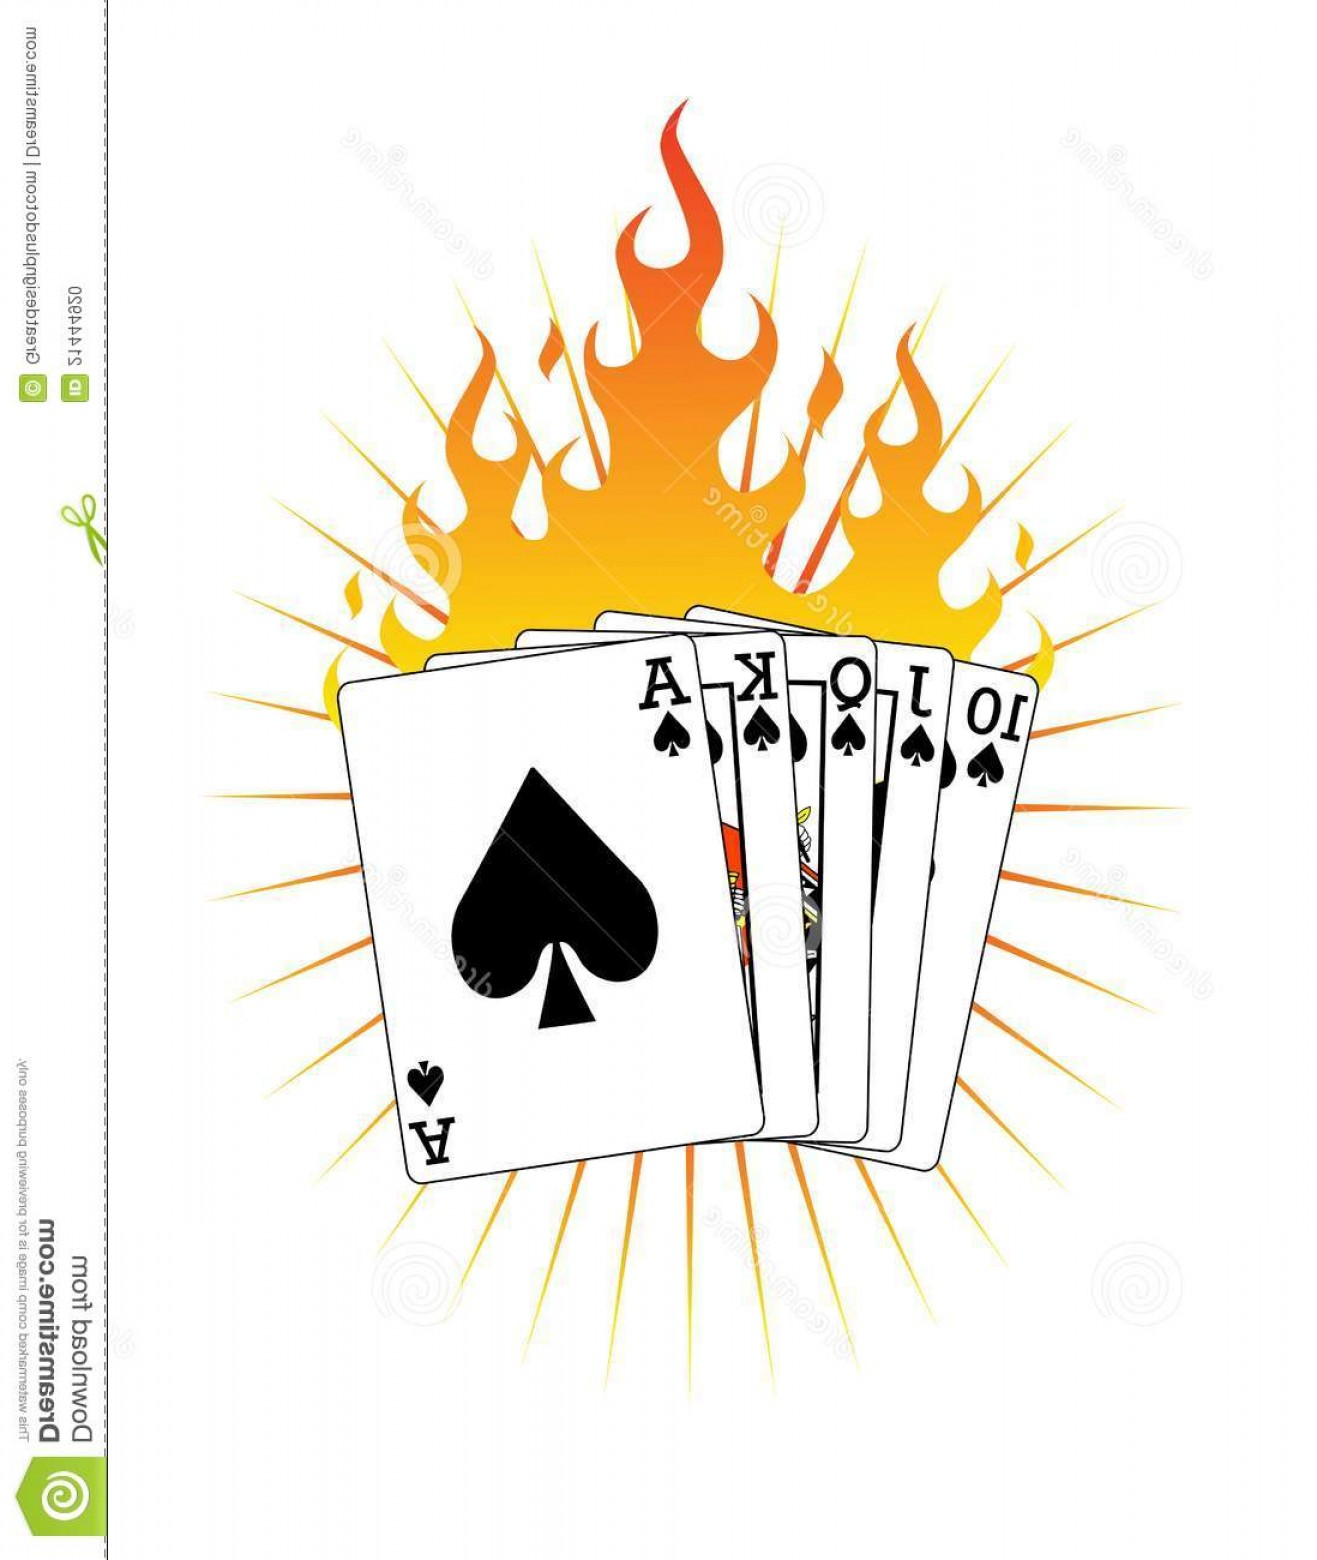 Fire Clip Art Vector: Stock Photo Royal Flush Fire Vector Clip Art Image